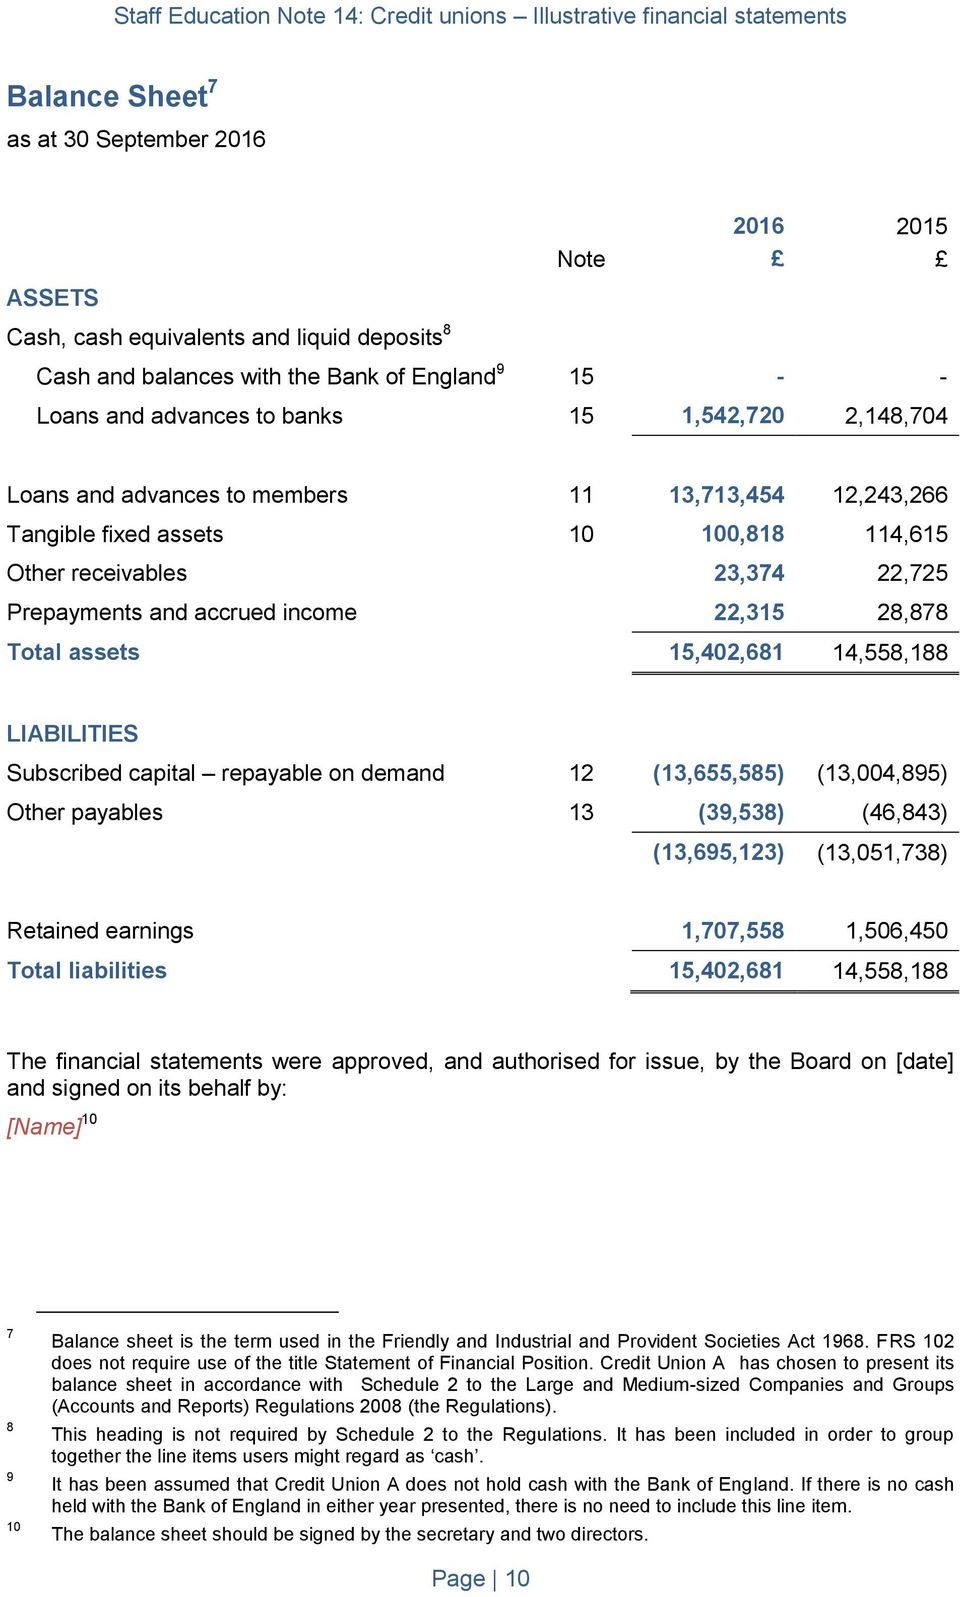 14,558,188 LIABILITIES Subscribed capital repayable on demand 12 (13,655,585) (13,004,895) Other payables 13 (39,538) (46,843) (13,695,123) (13,051,738) Retained earnings 1,707,558 1,506,450 Total